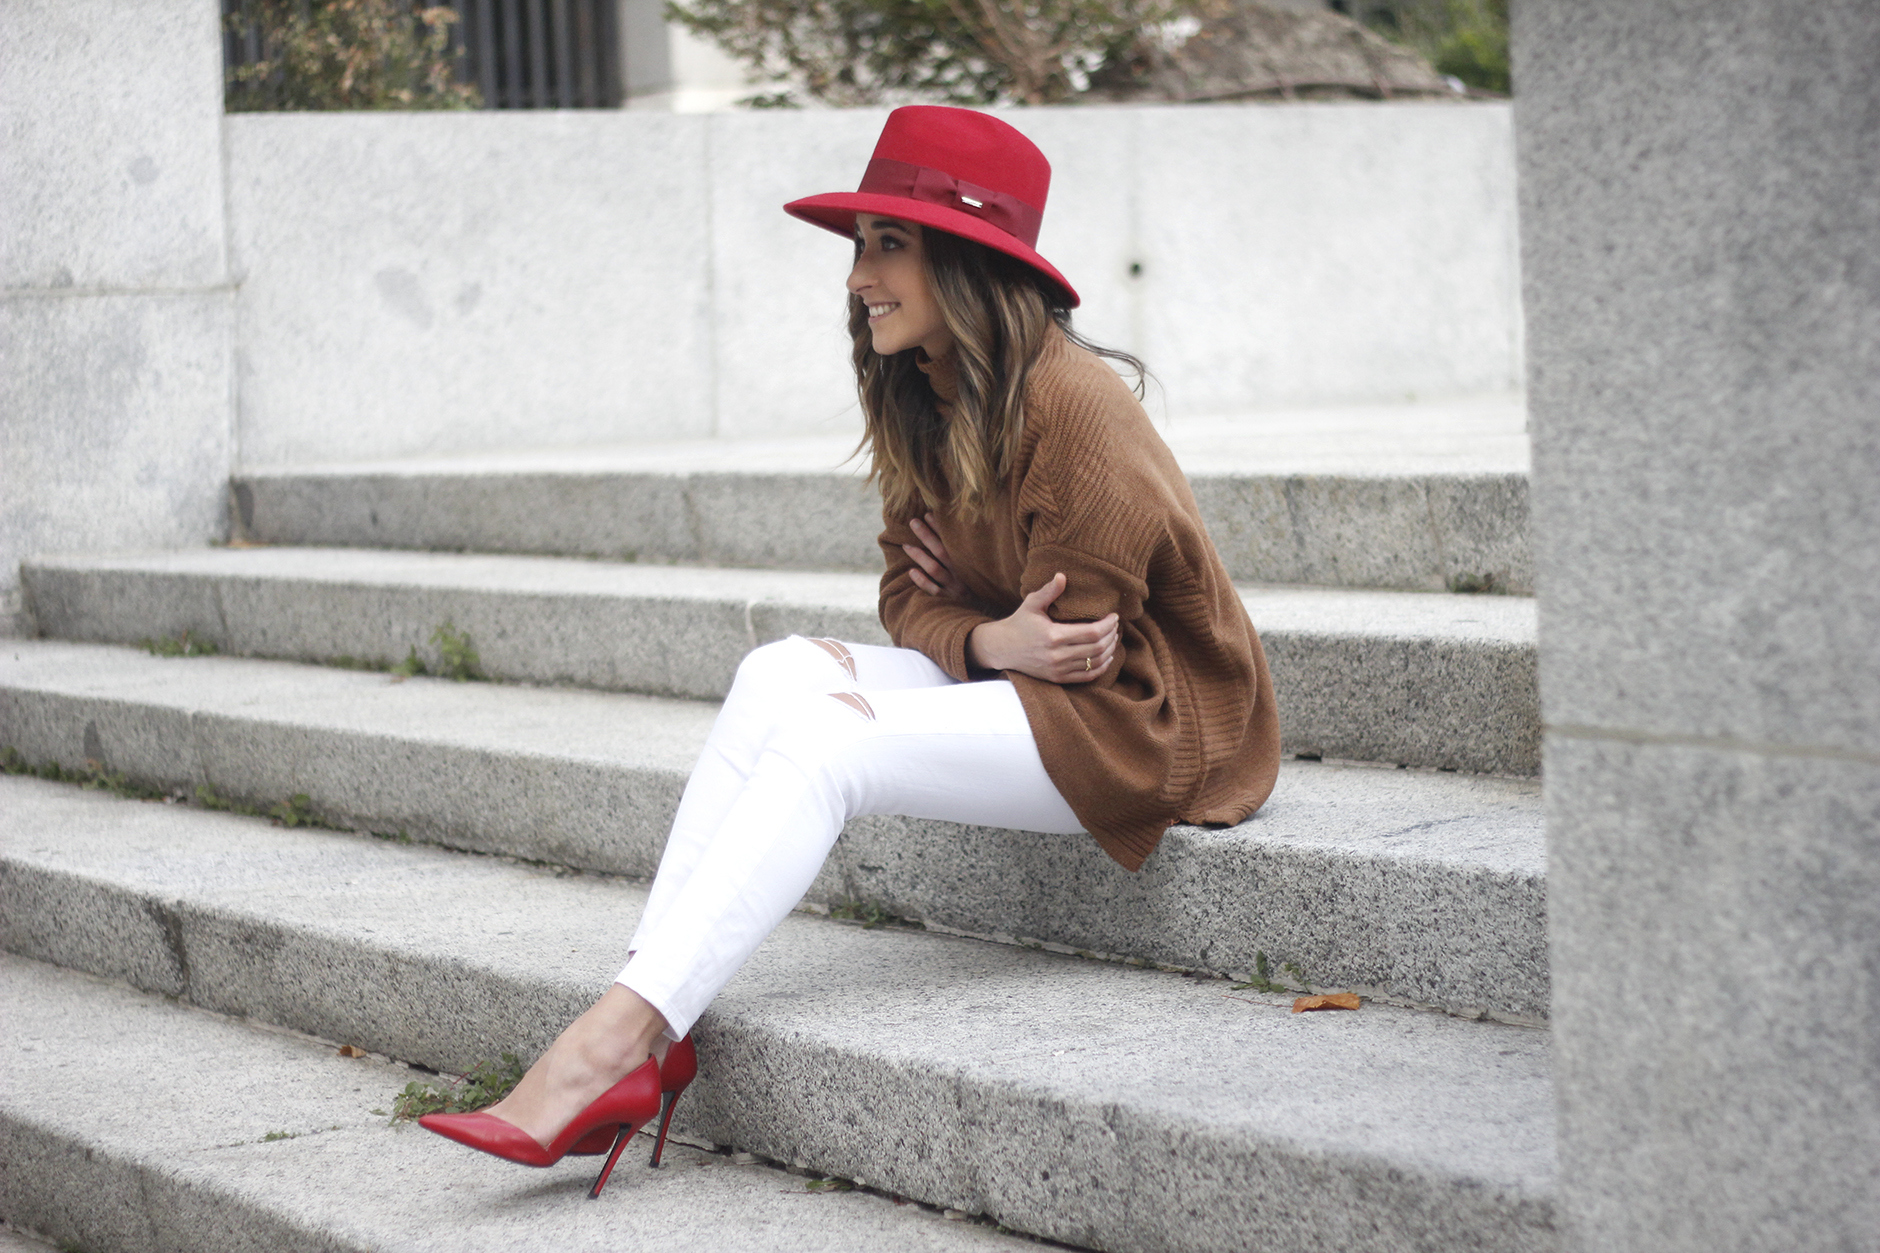 Turtleneck Sweater white jeans red heels red hat uterqüe outfit14